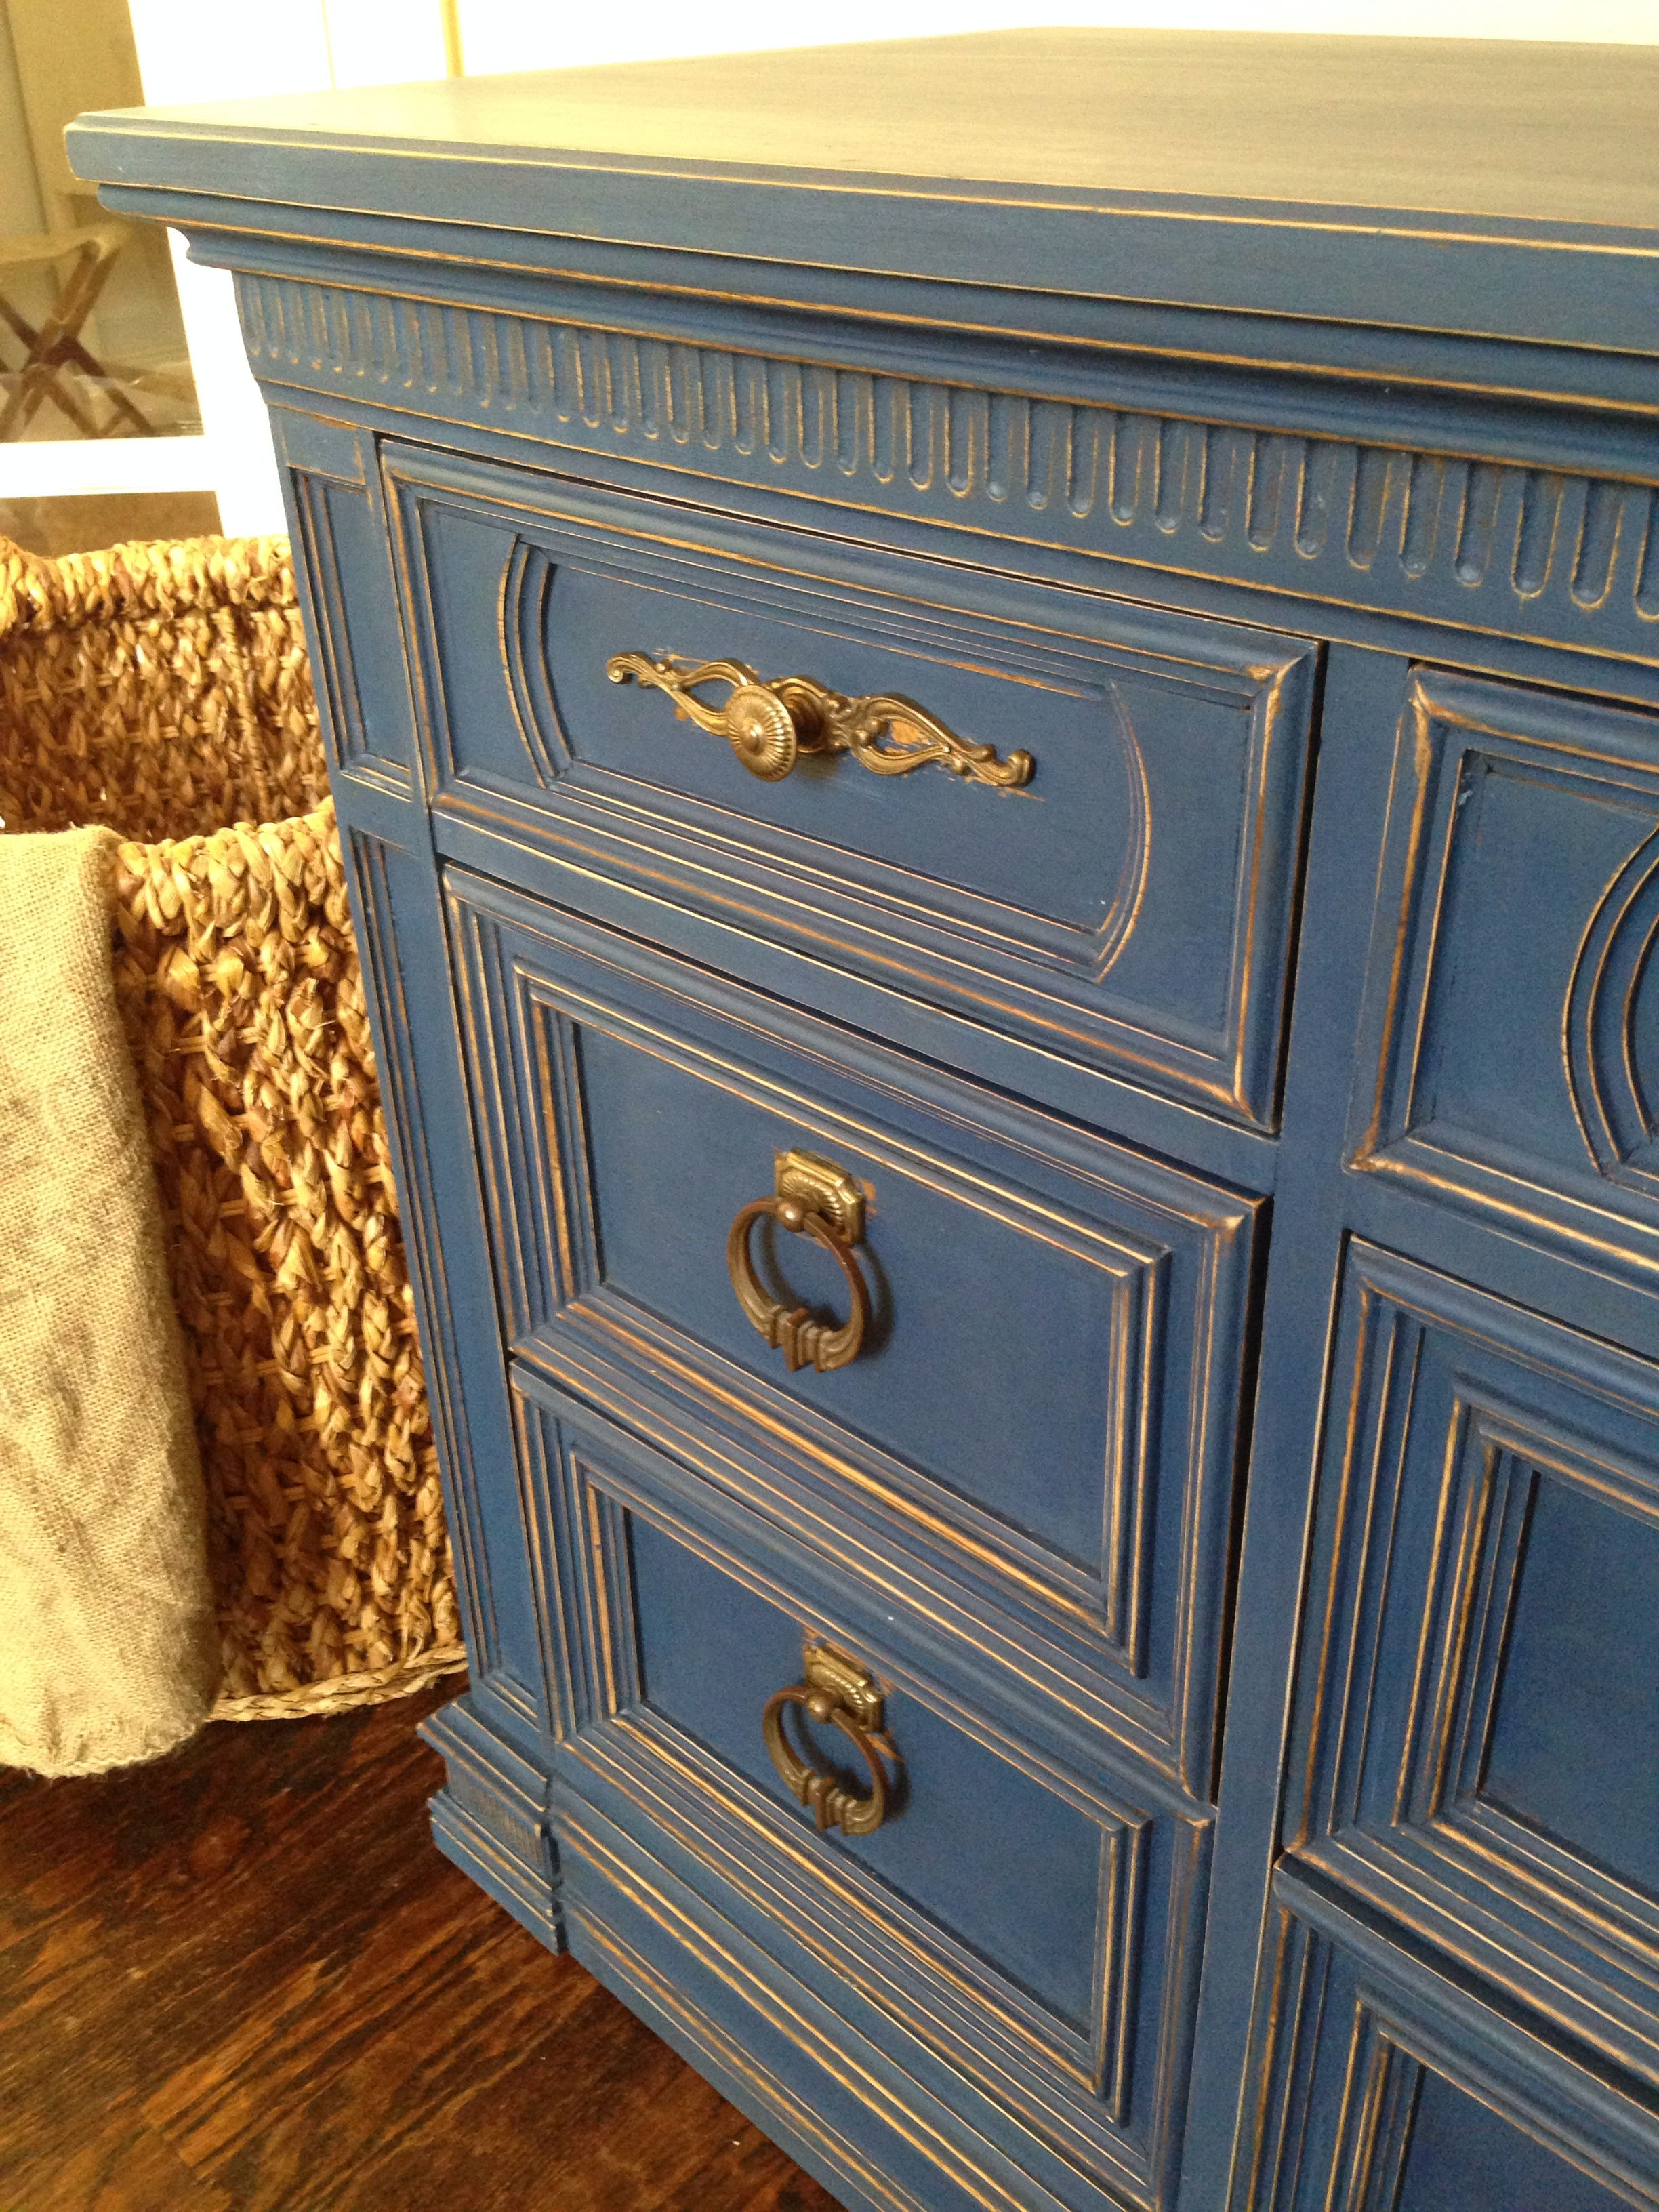 Annie Sloan S Napoleonic Blue My Favorite I Distressed All The Edges To Make The Details Pop Painting Furniture Diy Napoleonic Blue Paint Furniture